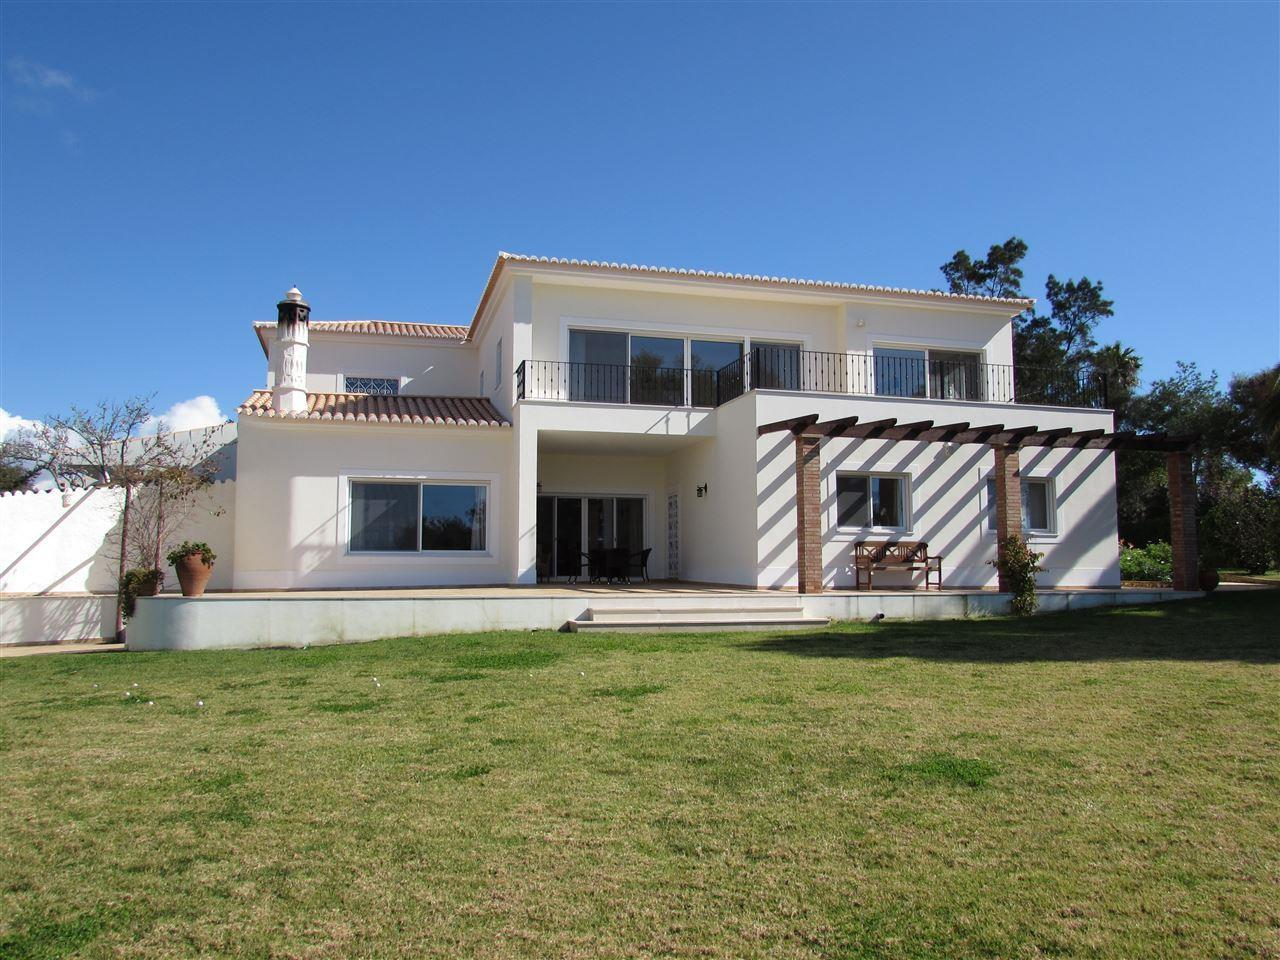 Single Family Home for Sale at Detached house, 5 bedrooms, for Sale Other Portugal, Other Areas In Portugal Portugal